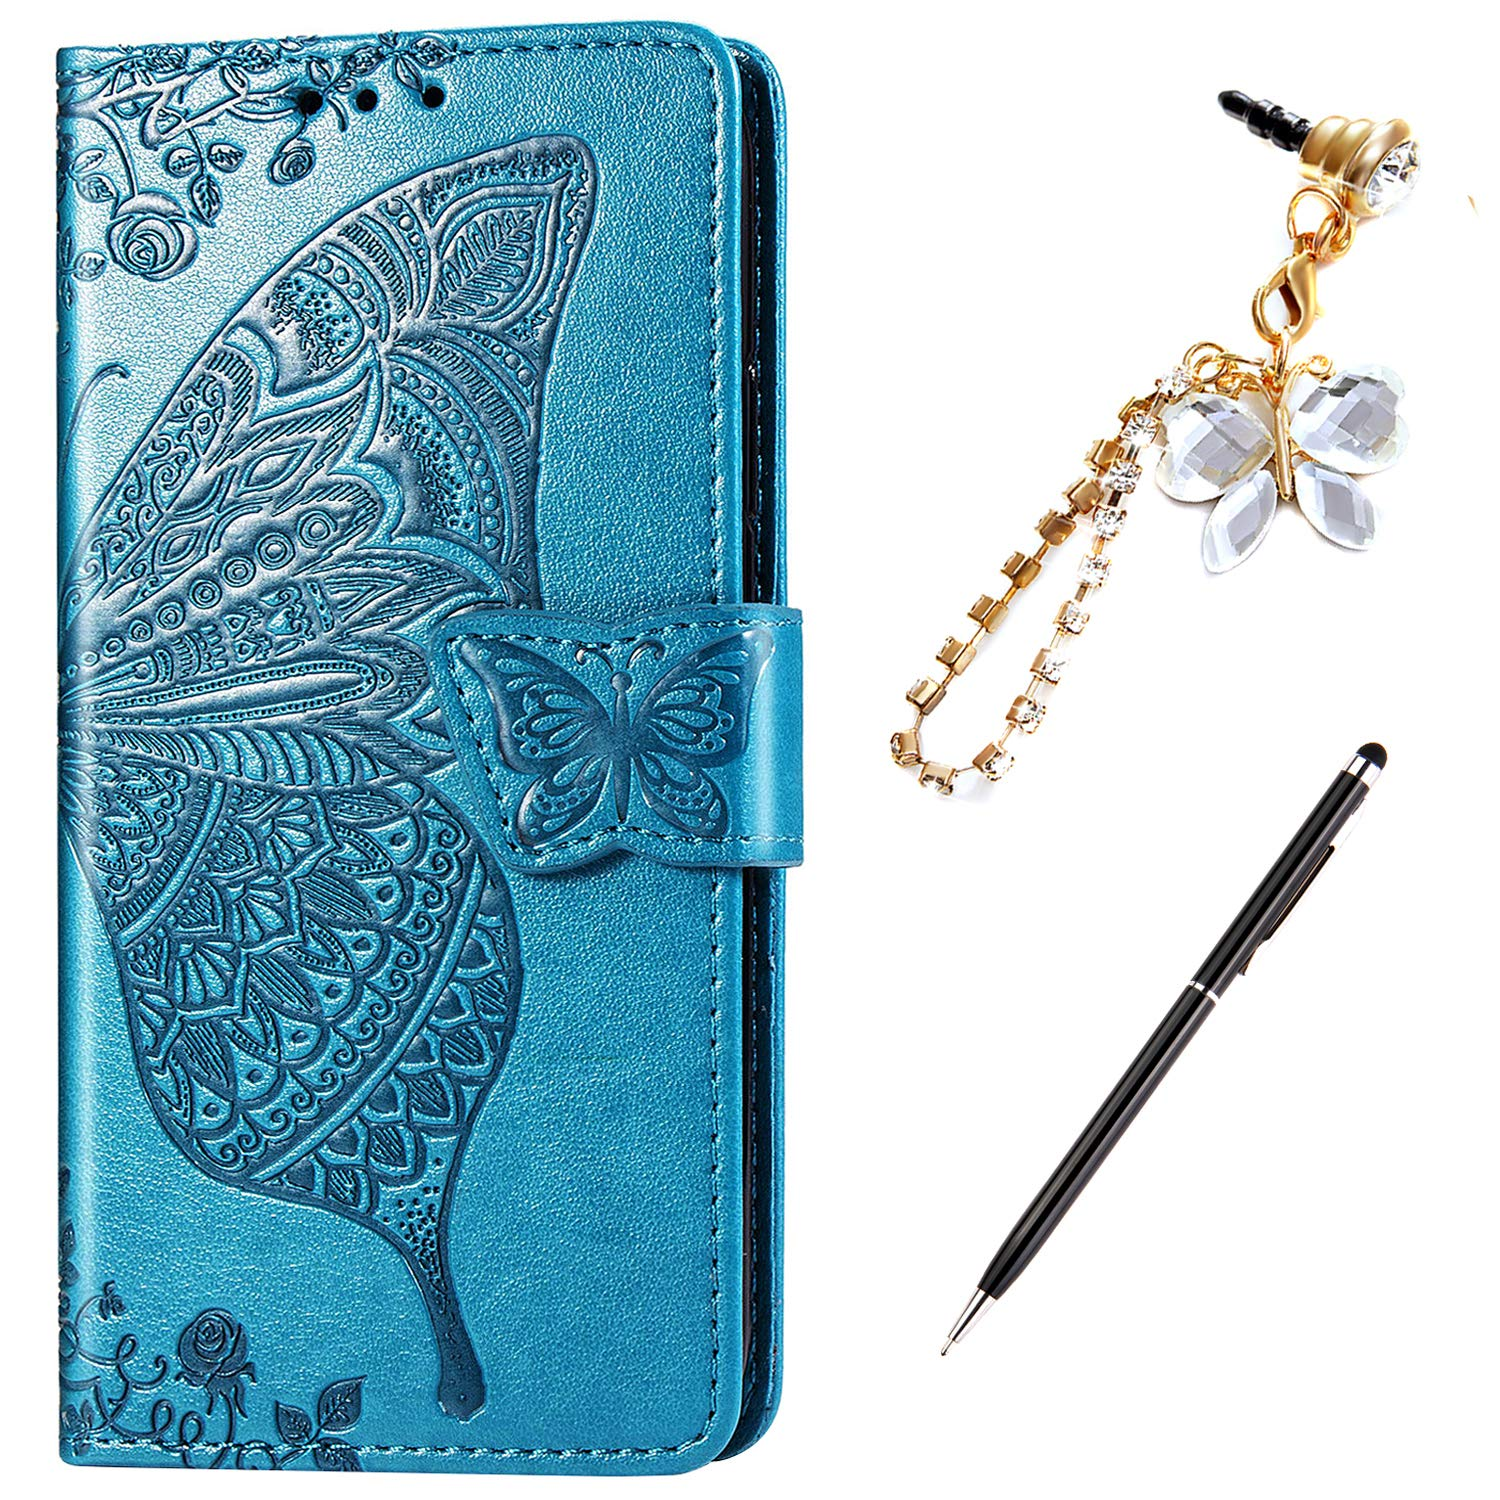 ikasus Case for iPhone XR Cover,Embossing Mandala Butterfly Rose Vine Flip Folio Wallet Case PU Leather Stand Card Slots Protective Case Cover + Dust Plug Stylus for iPhone XR Wallet Case,Blue by ikasus